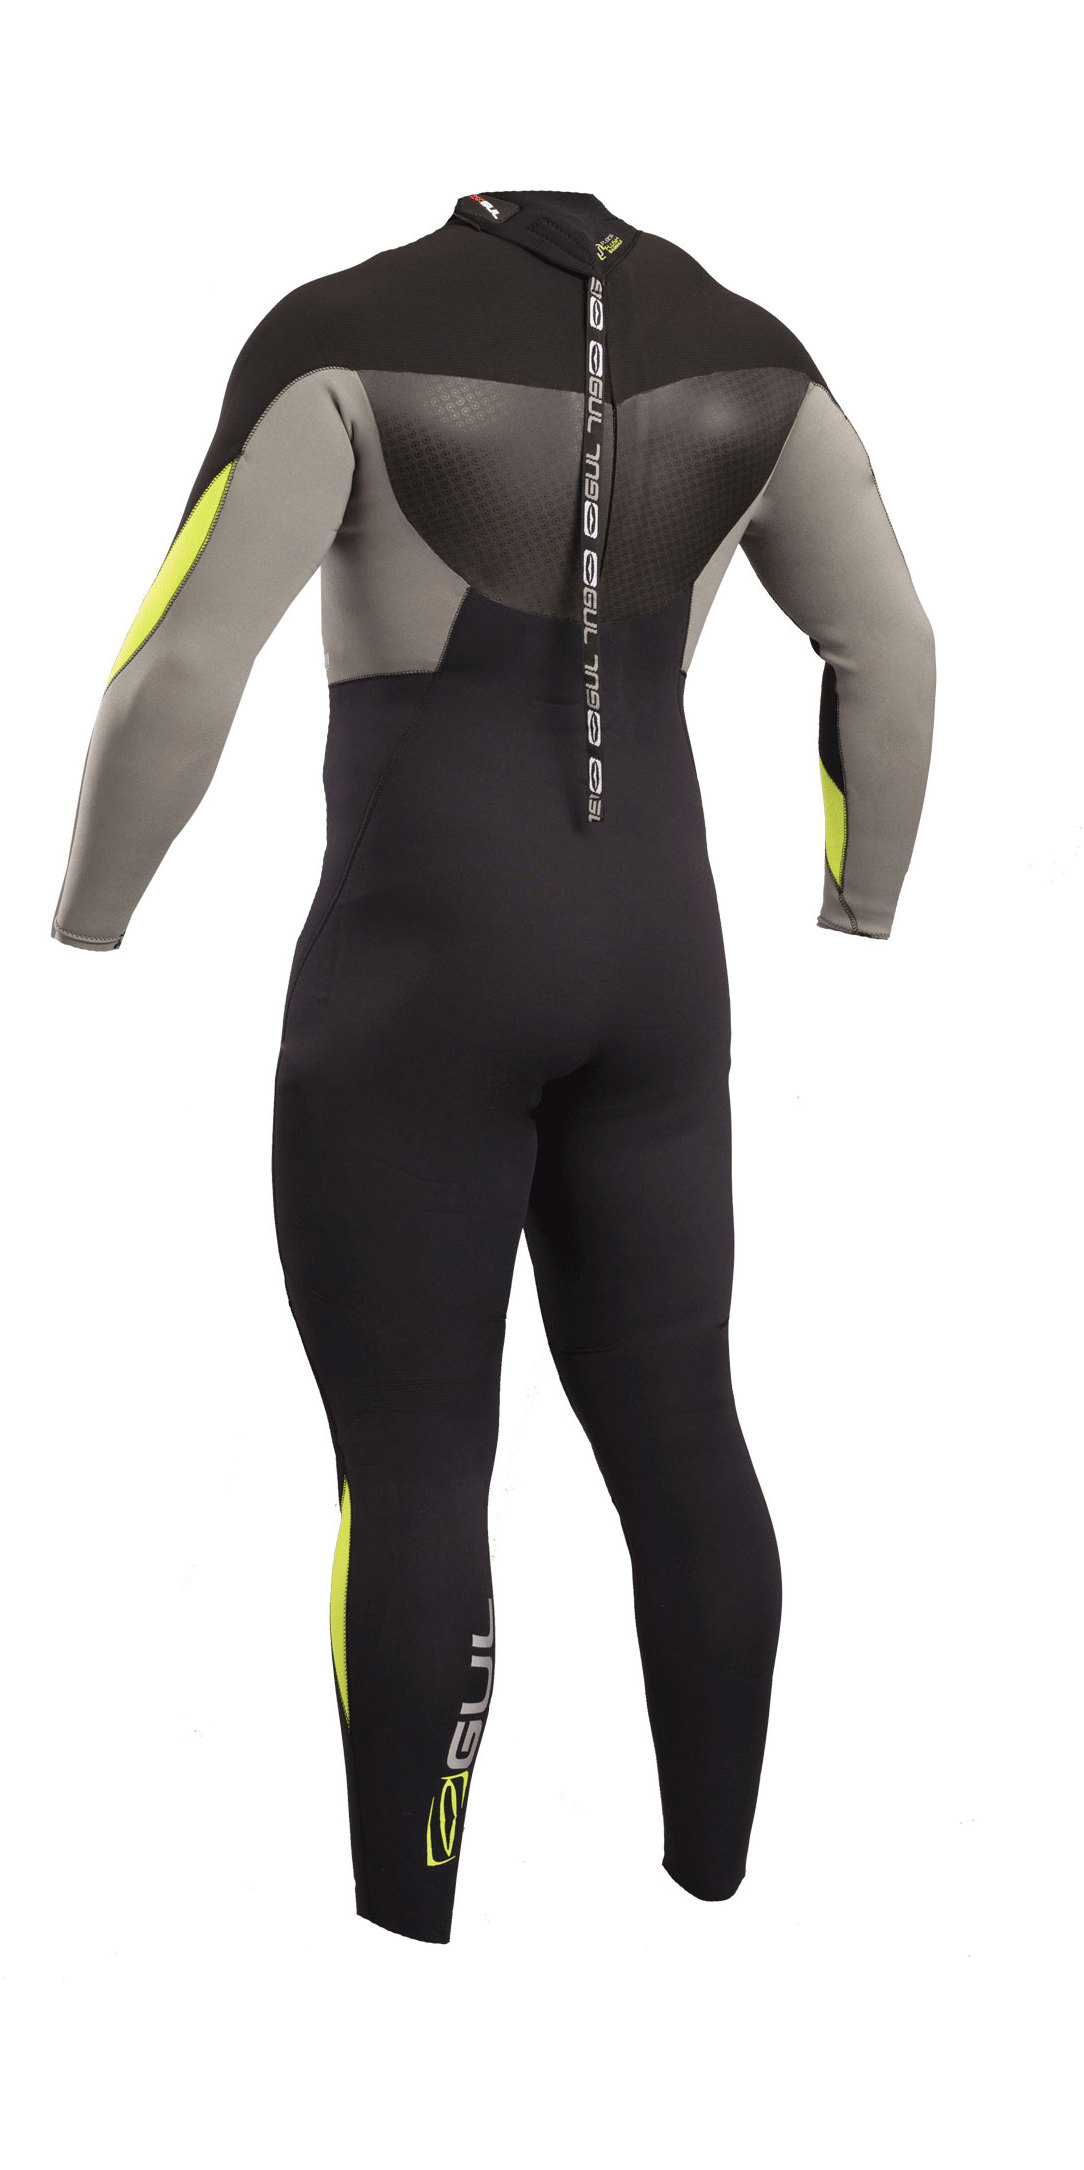 2020 Gul Response 3/2mm Back Zip GBS Wetsuit Black / Lime RE1231-B4